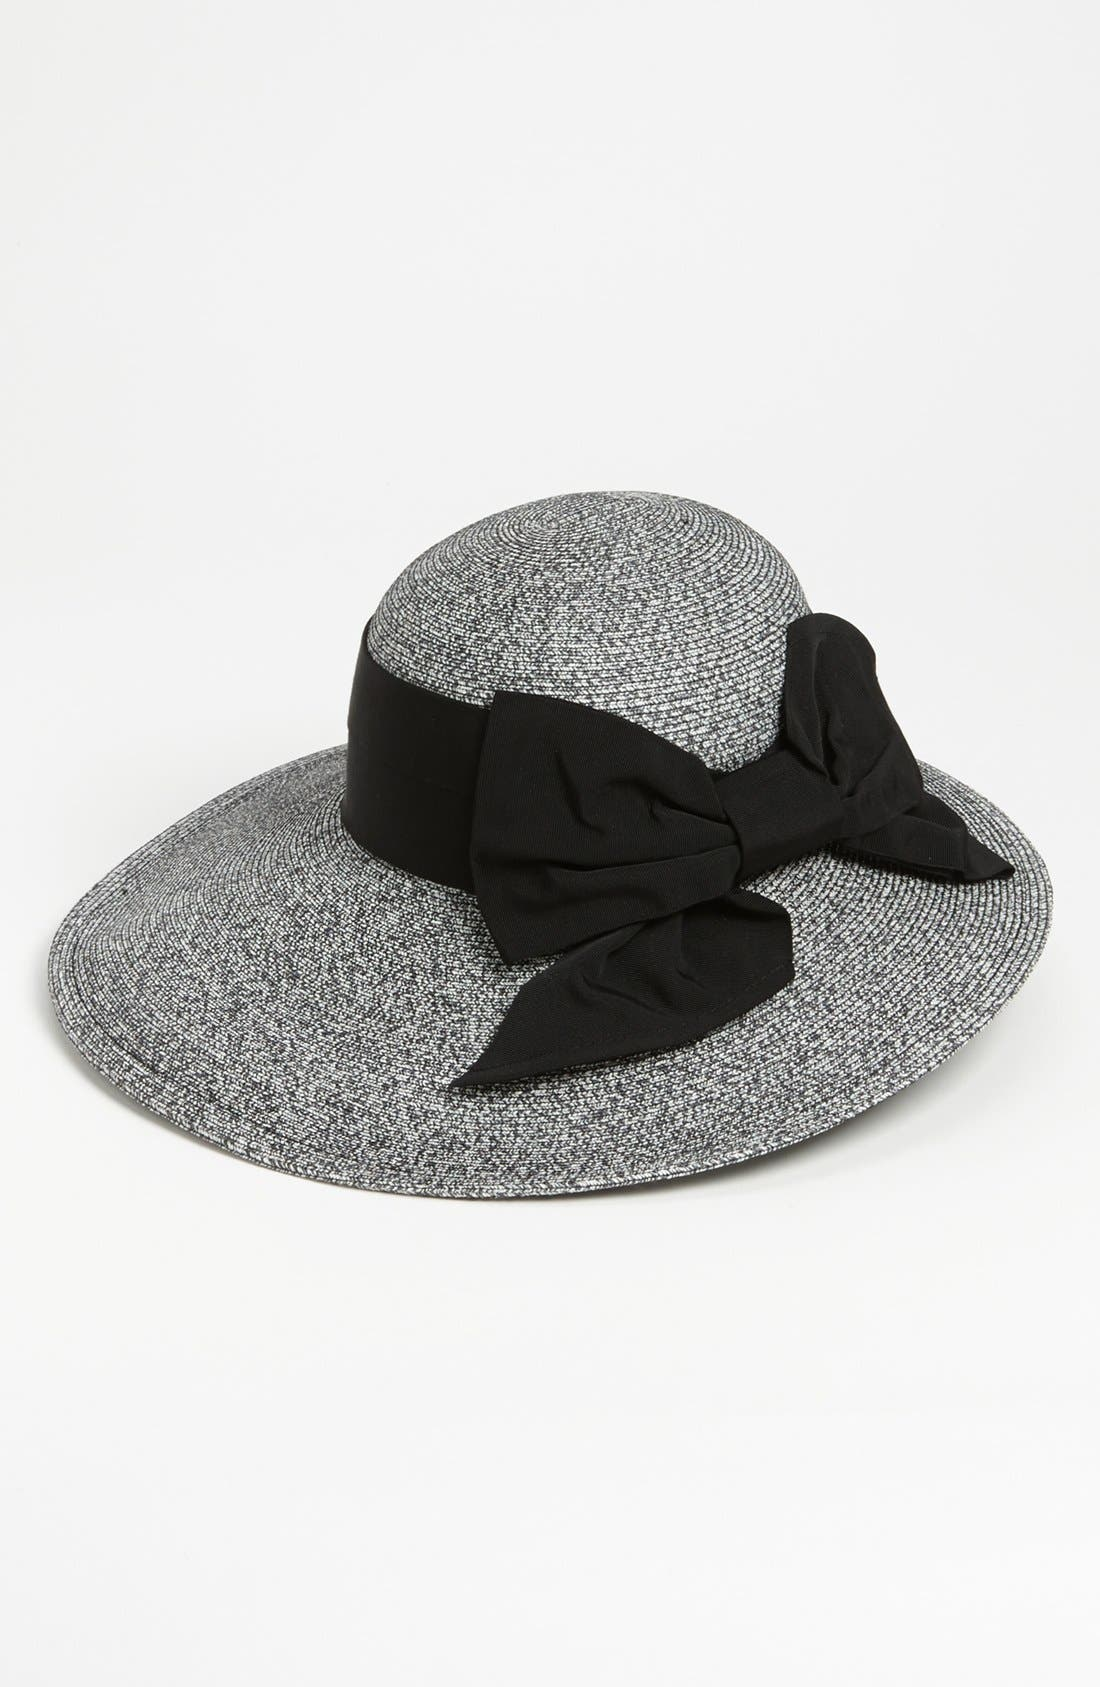 Alternate Image 1 Selected - Nordstrom Asymmetrical Straw Hat